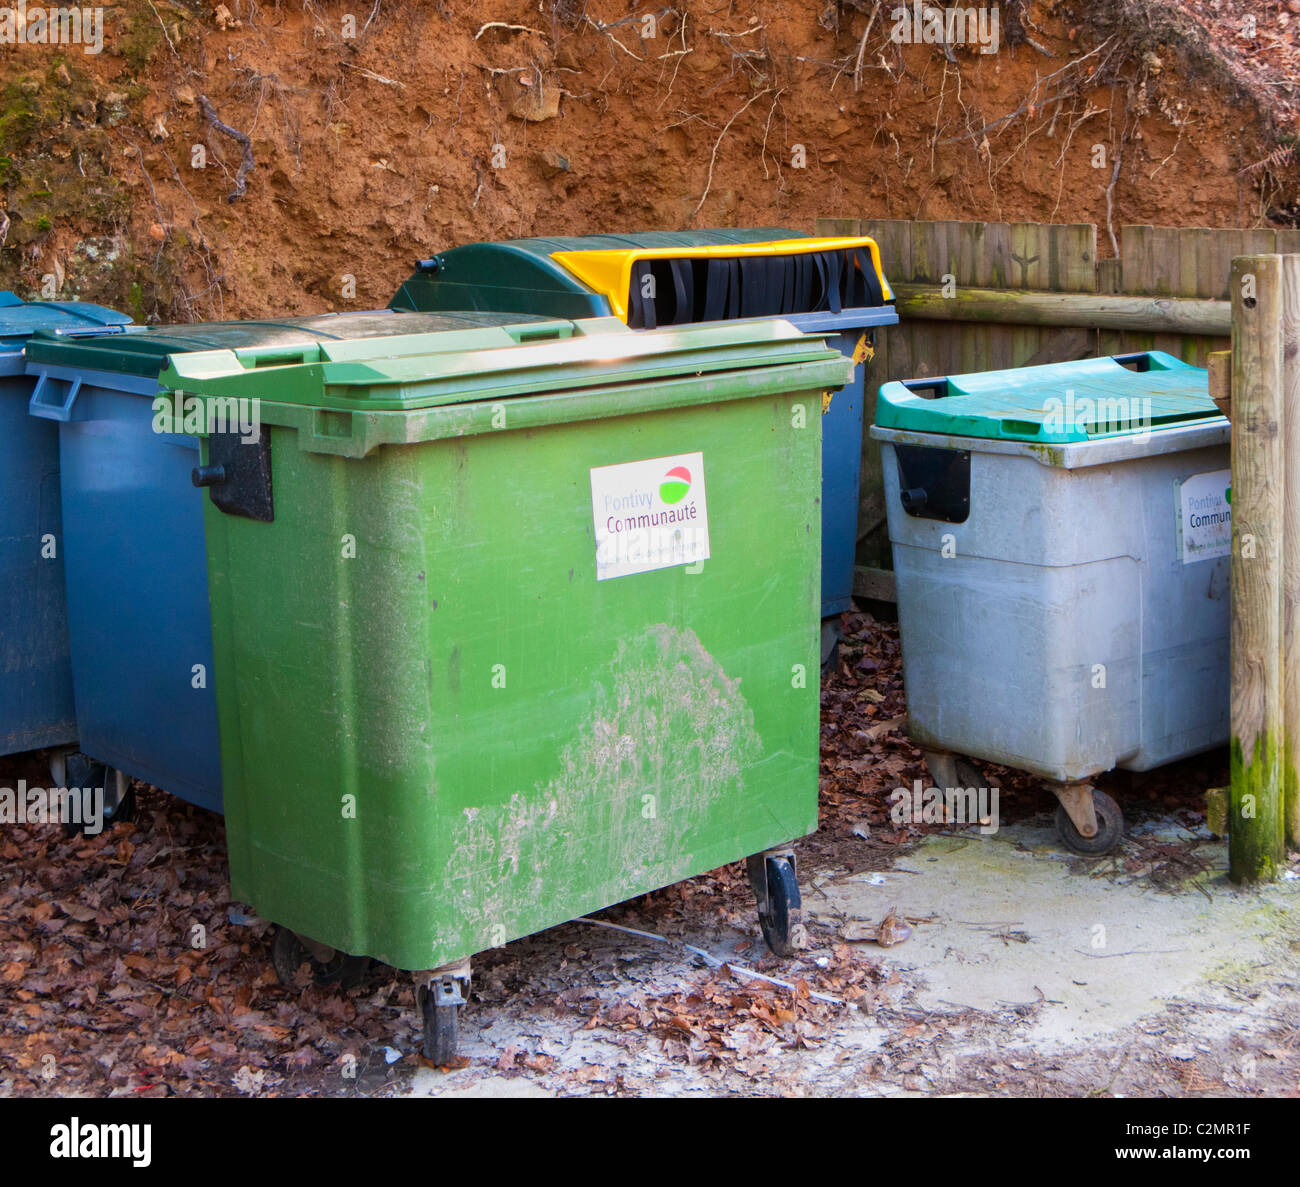 Communal rubbish bins in France - Stock Image